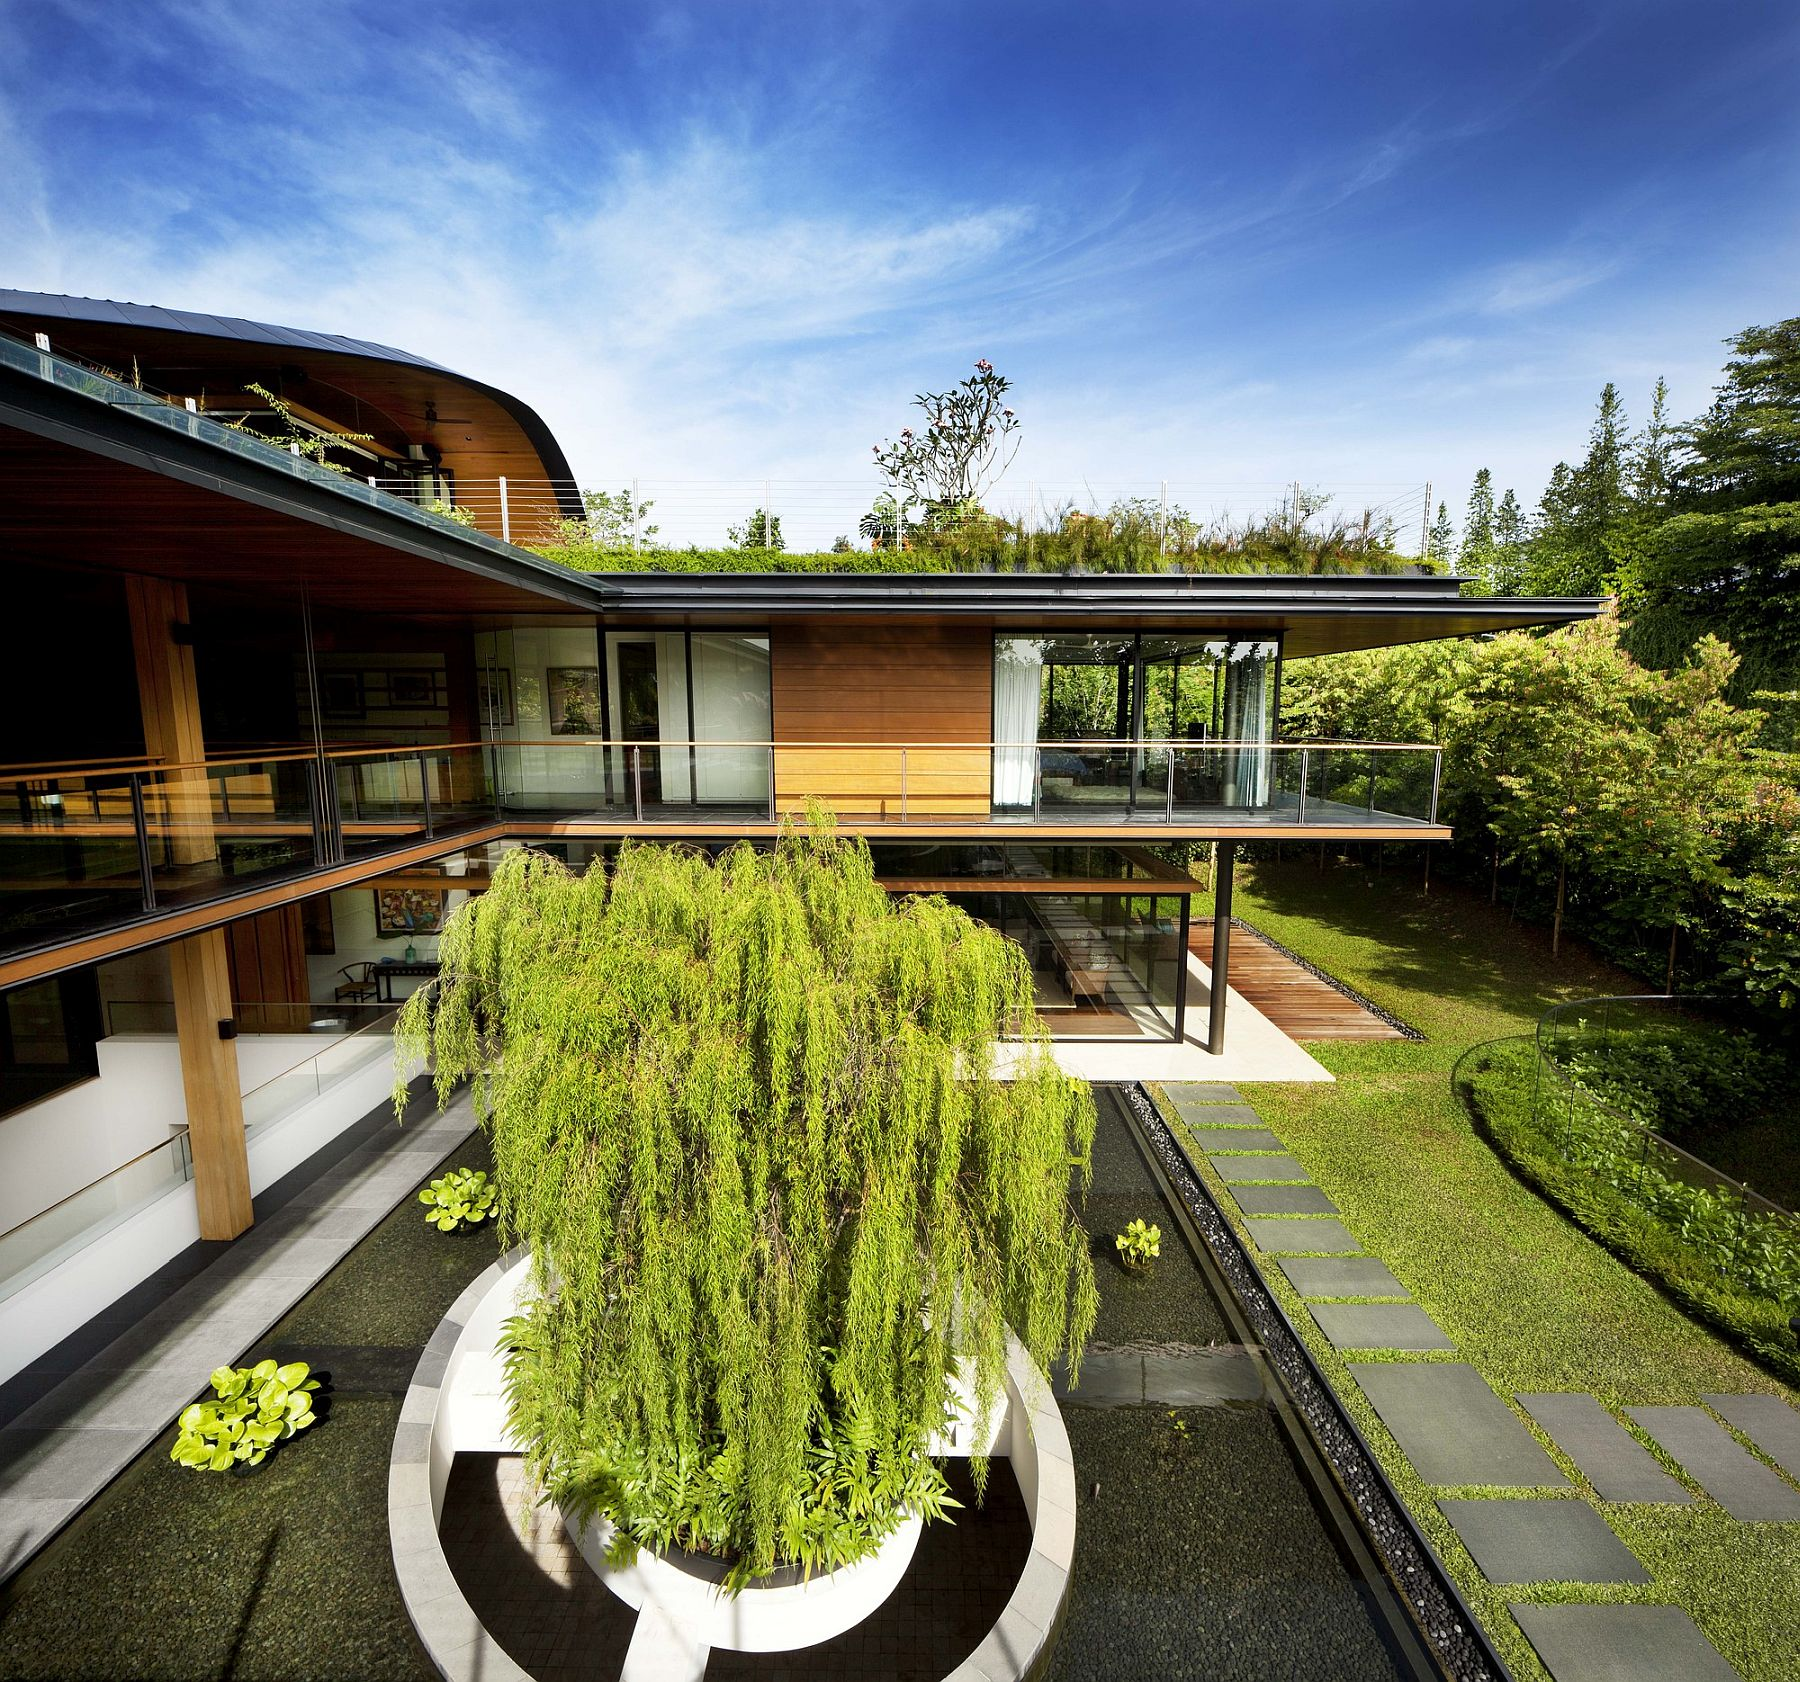 Curated landscape around the house makes a big visual impact